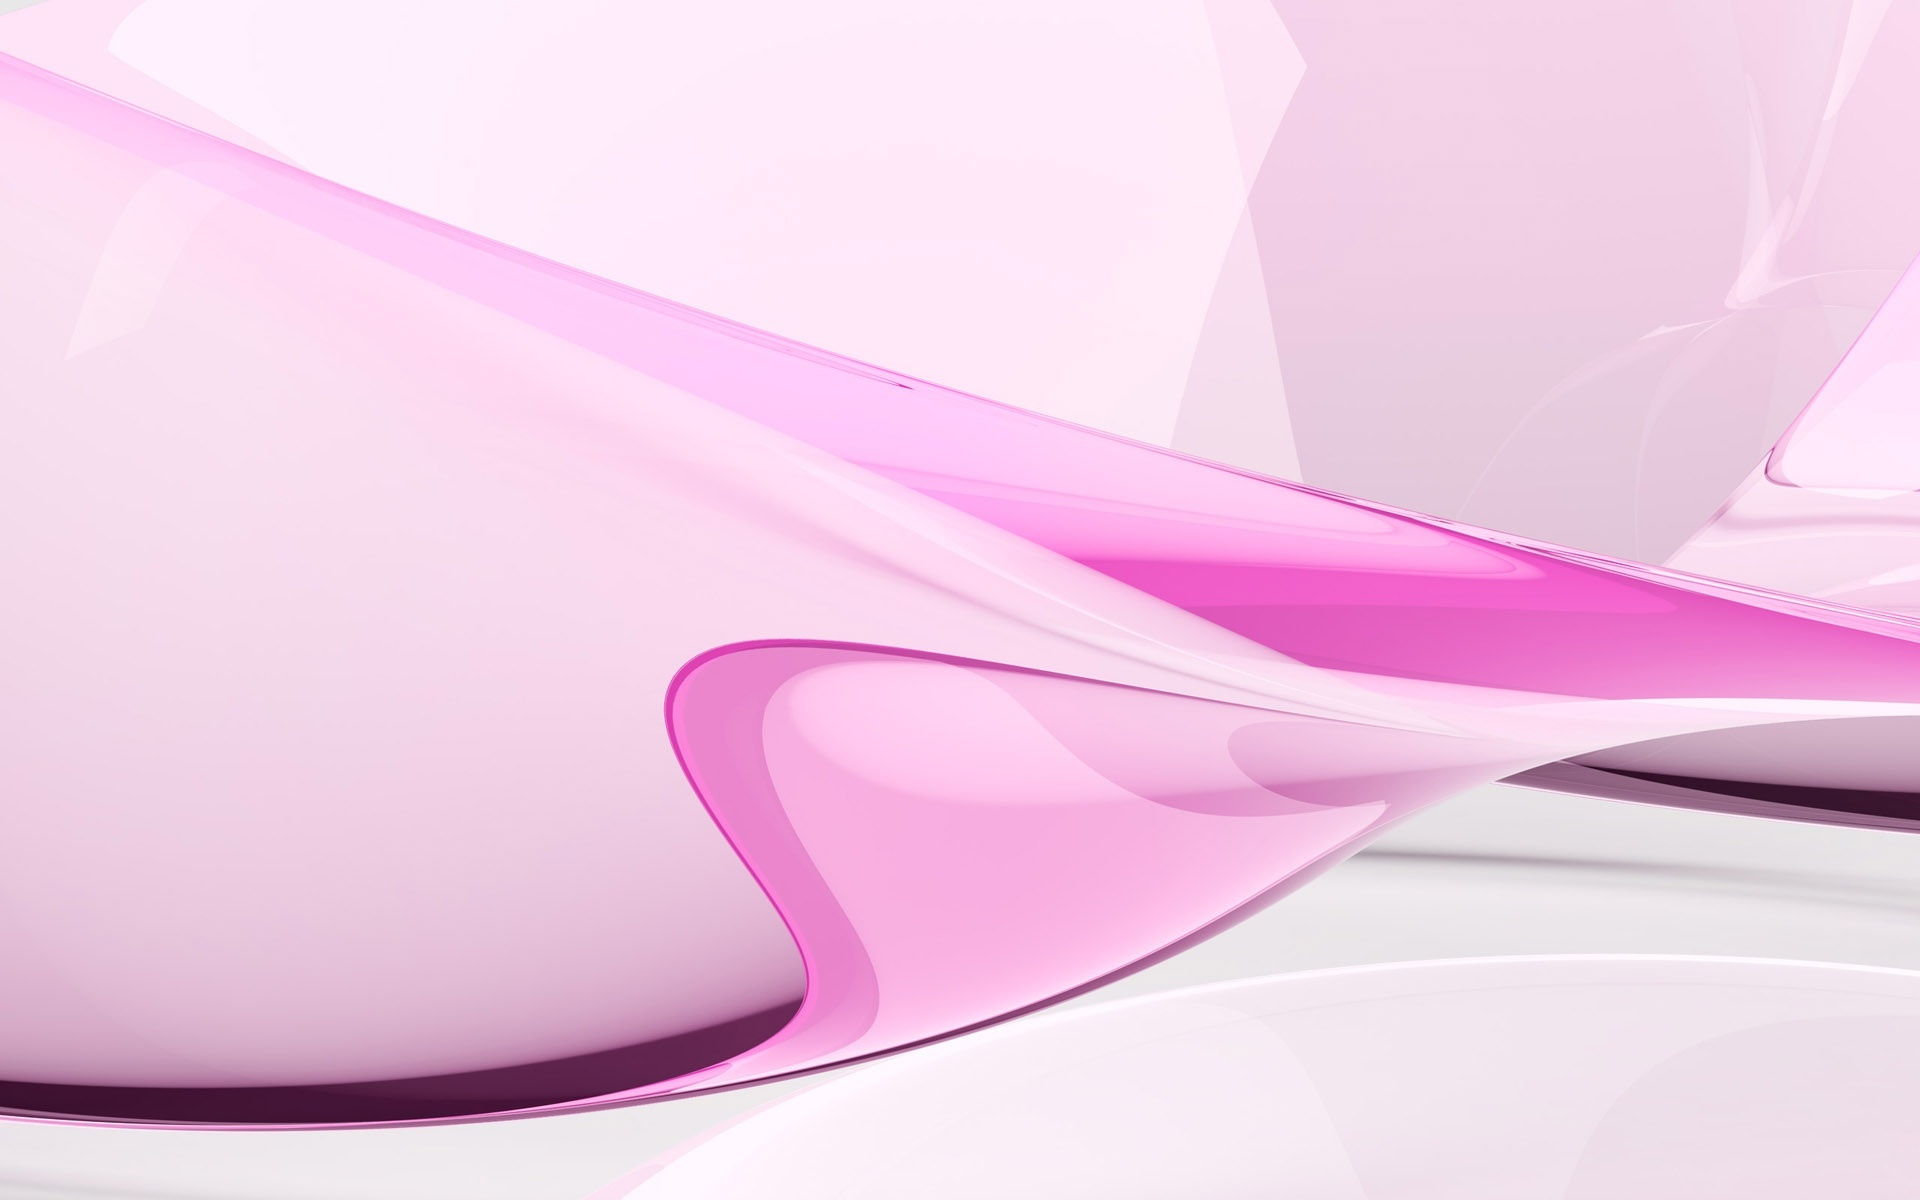 Pink Abstract Designs Wallpapers In Jpg Format For Free Download